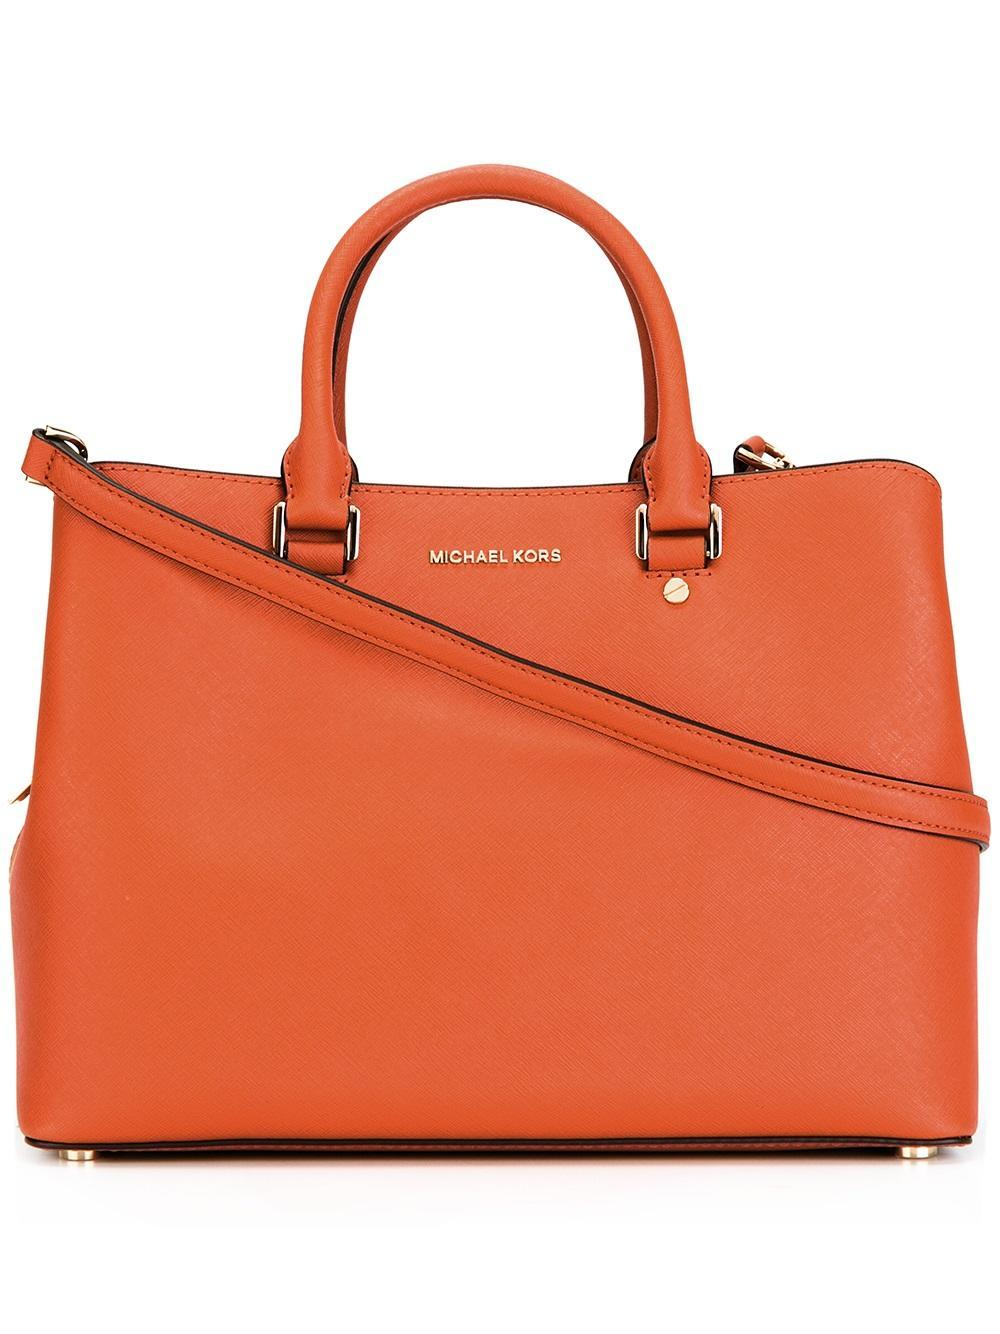 11829371d900b5 Michael Kors Tote Handbags Uk | Stanford Center for Opportunity ...